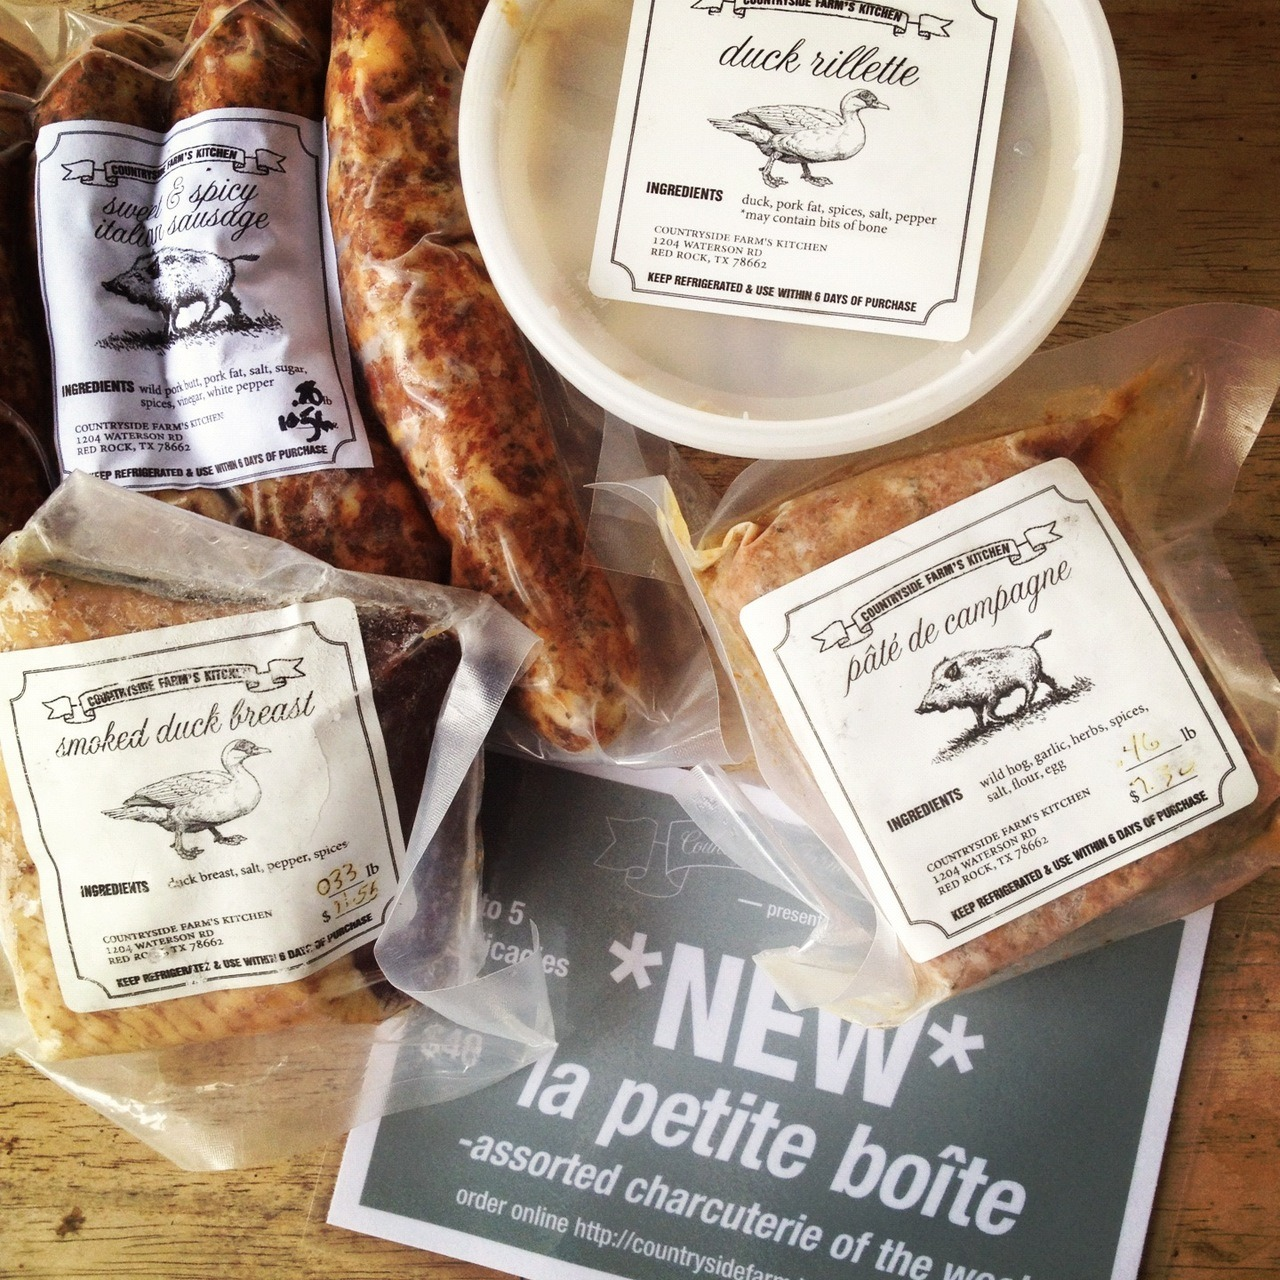 We now have an online store. You can purchase your Charcuterie box online here or on our Facebook page. (Like us to receive updates, pictures, and specials) At only $40, it is a convenient way to get a good sampling of all of our wonderful products. It is also a great gift.